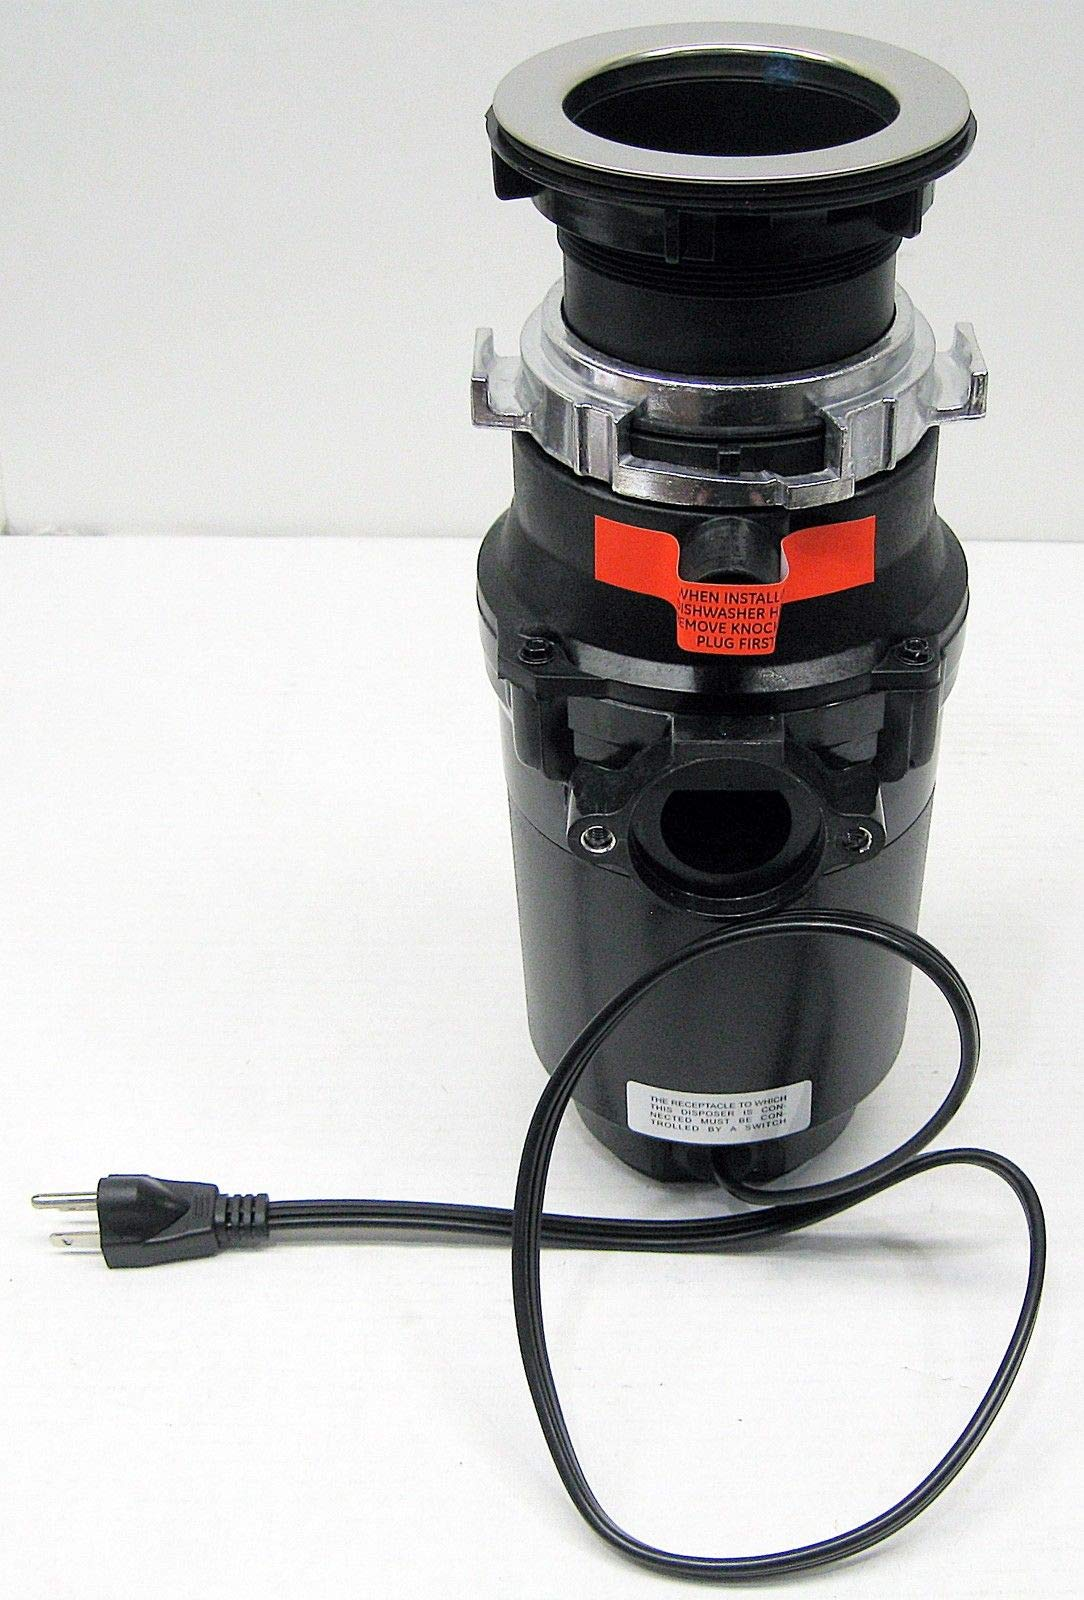 GFC520V for GE Disposall Garbage Food Waste Disposer 1/2 HP With Cord